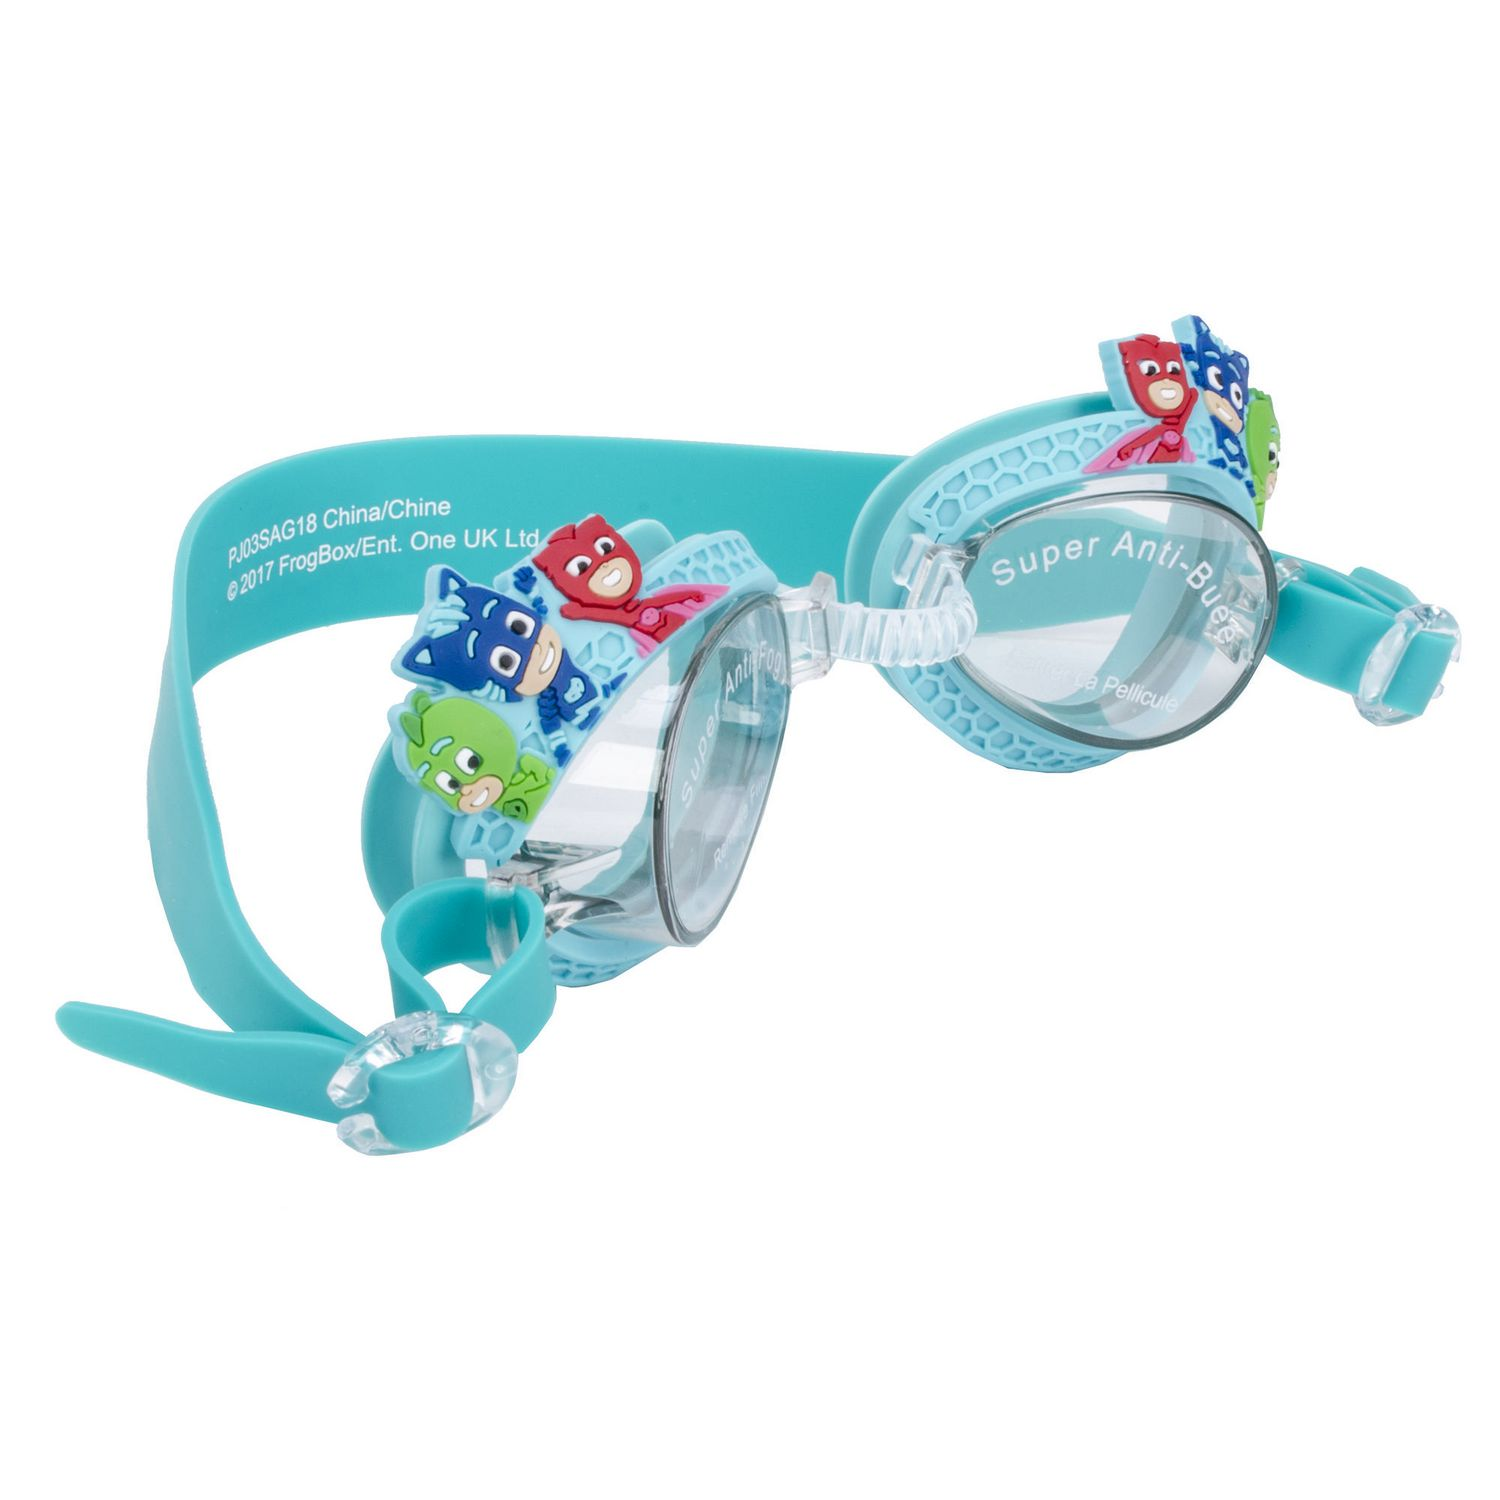 8a75ec9f66d5 ... Kids Swim Goggles - image 1 of 5 zoomed image